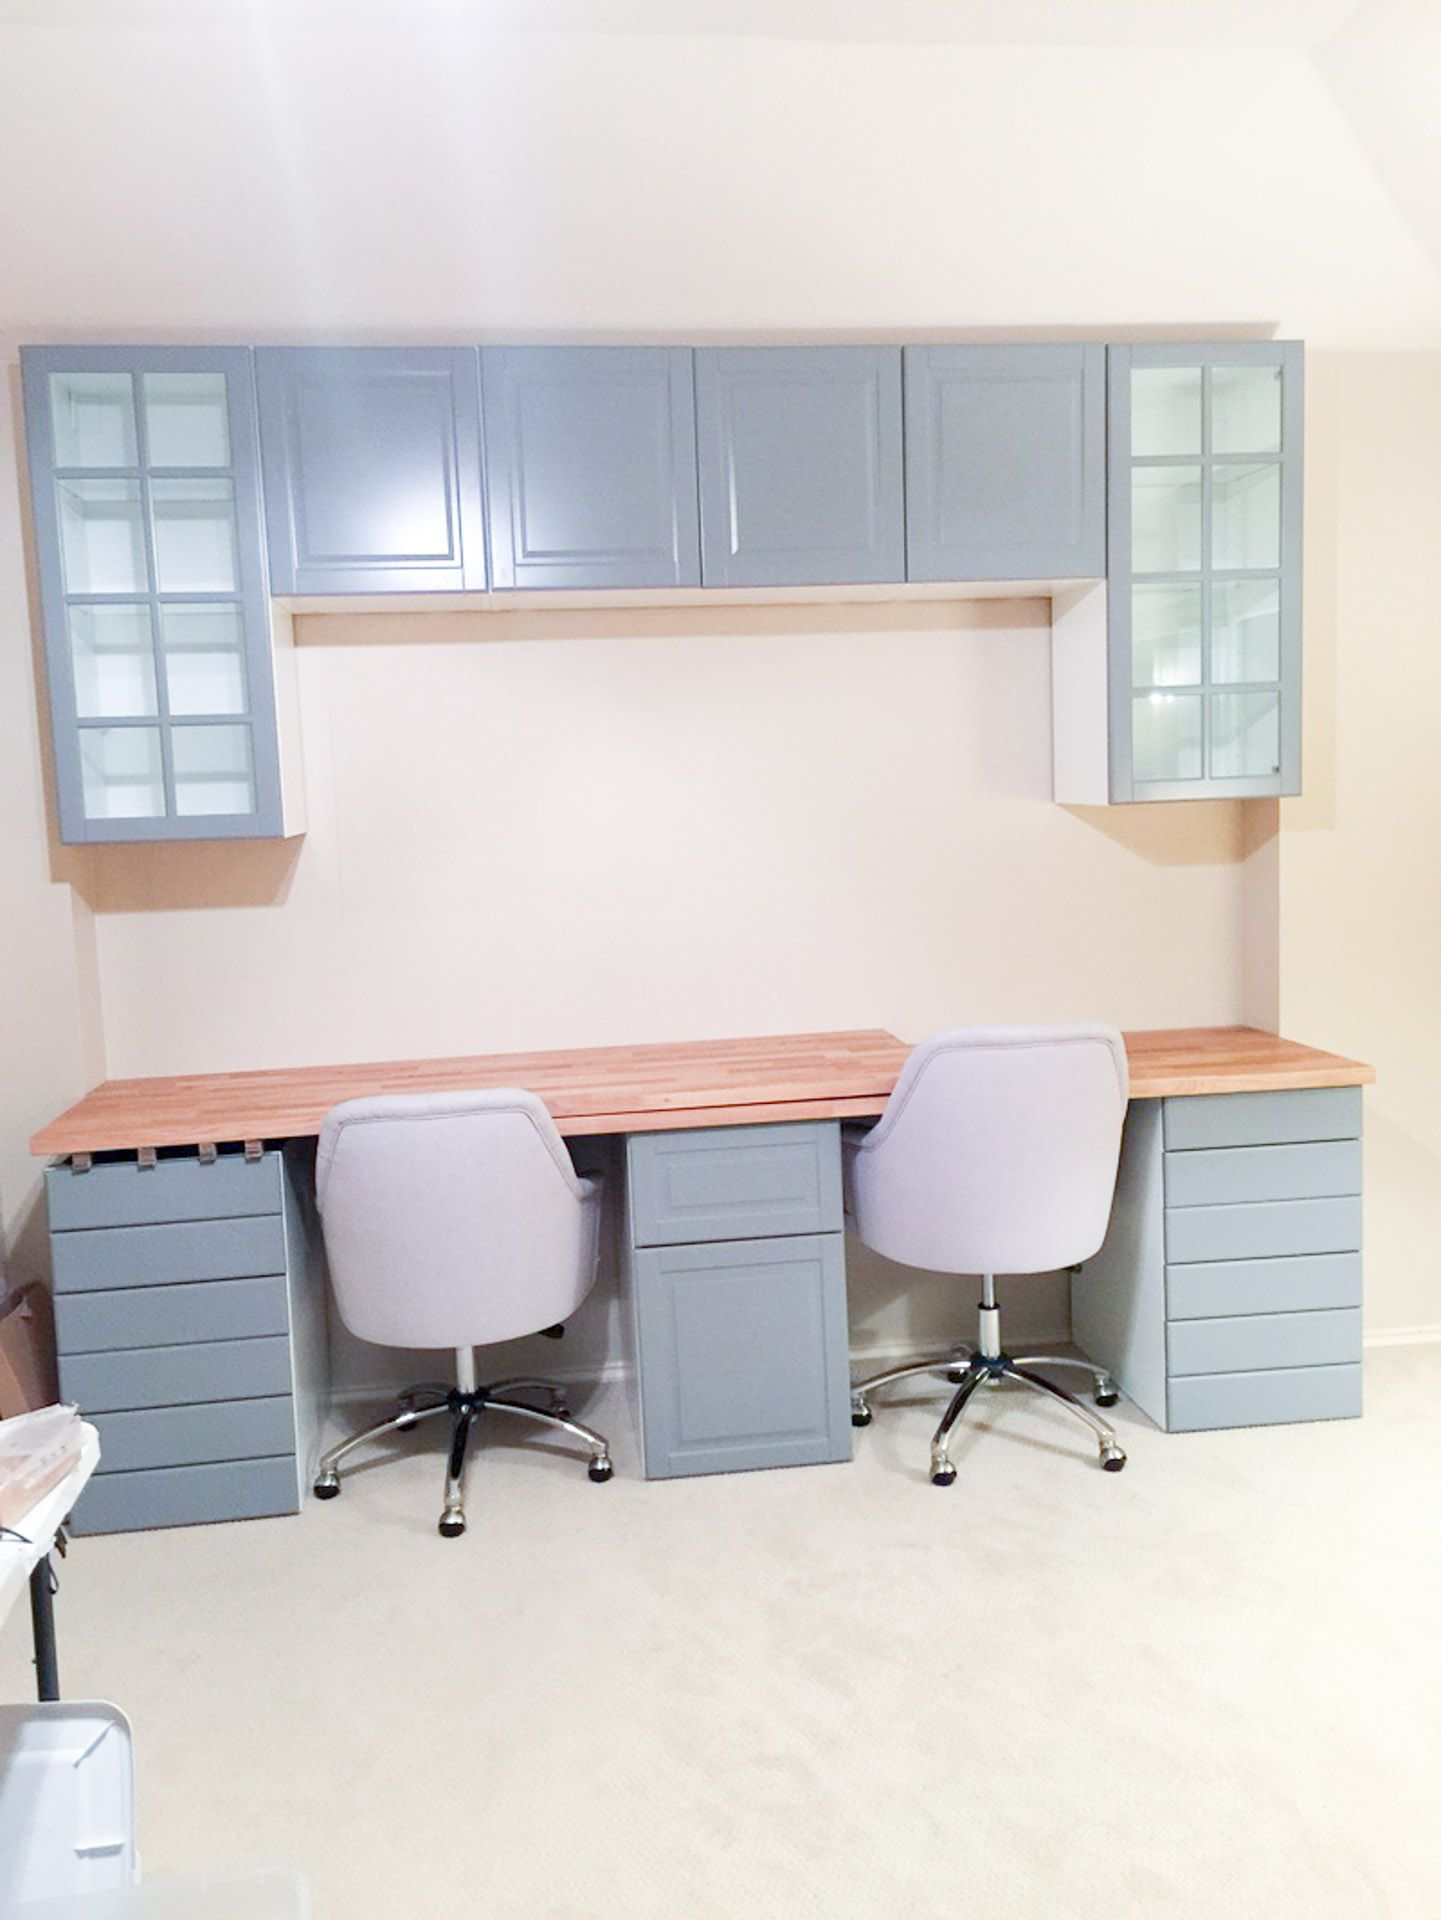 Custom Desk Build Part One » DIY Without Fear in 2020